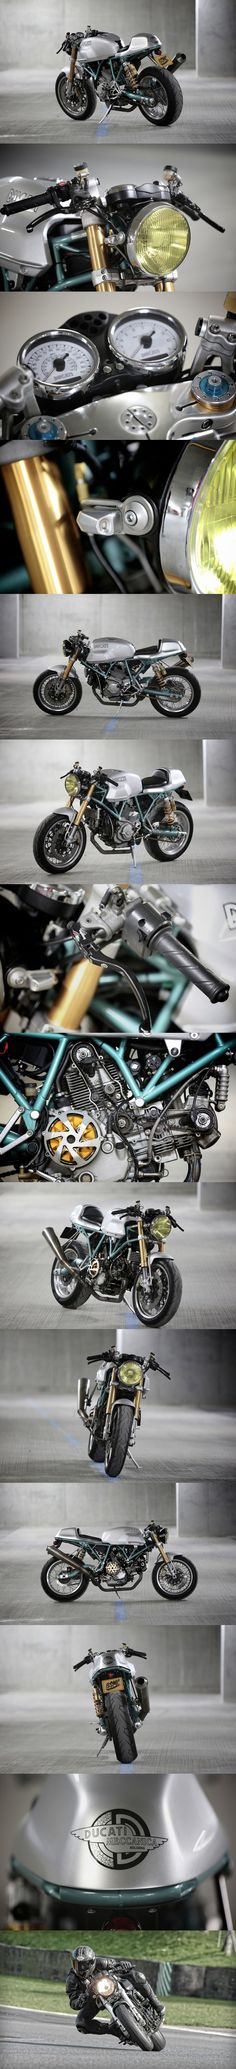 Ducati // Paul Smart 1000LE Cafe Racer - by Dutch and Cafe Racer Customs